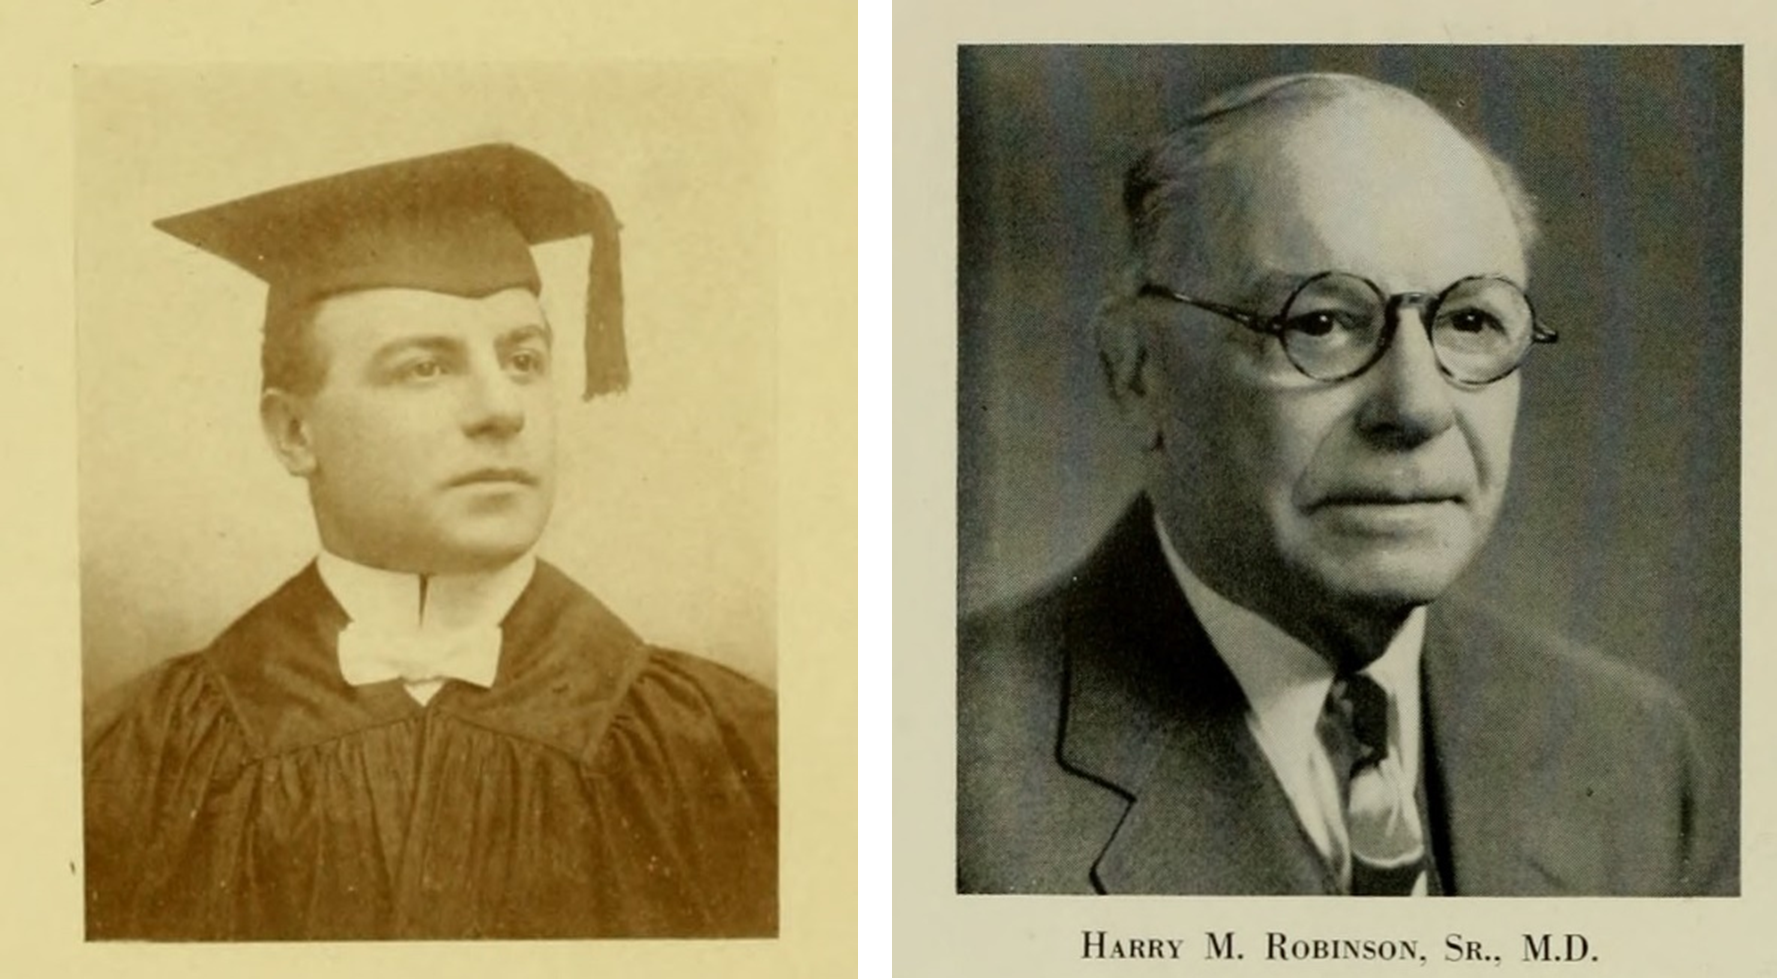 Two photographs, left photograph is a young man in a cap and gown, right photograph is an older man wearing a suit and tie and glasses.